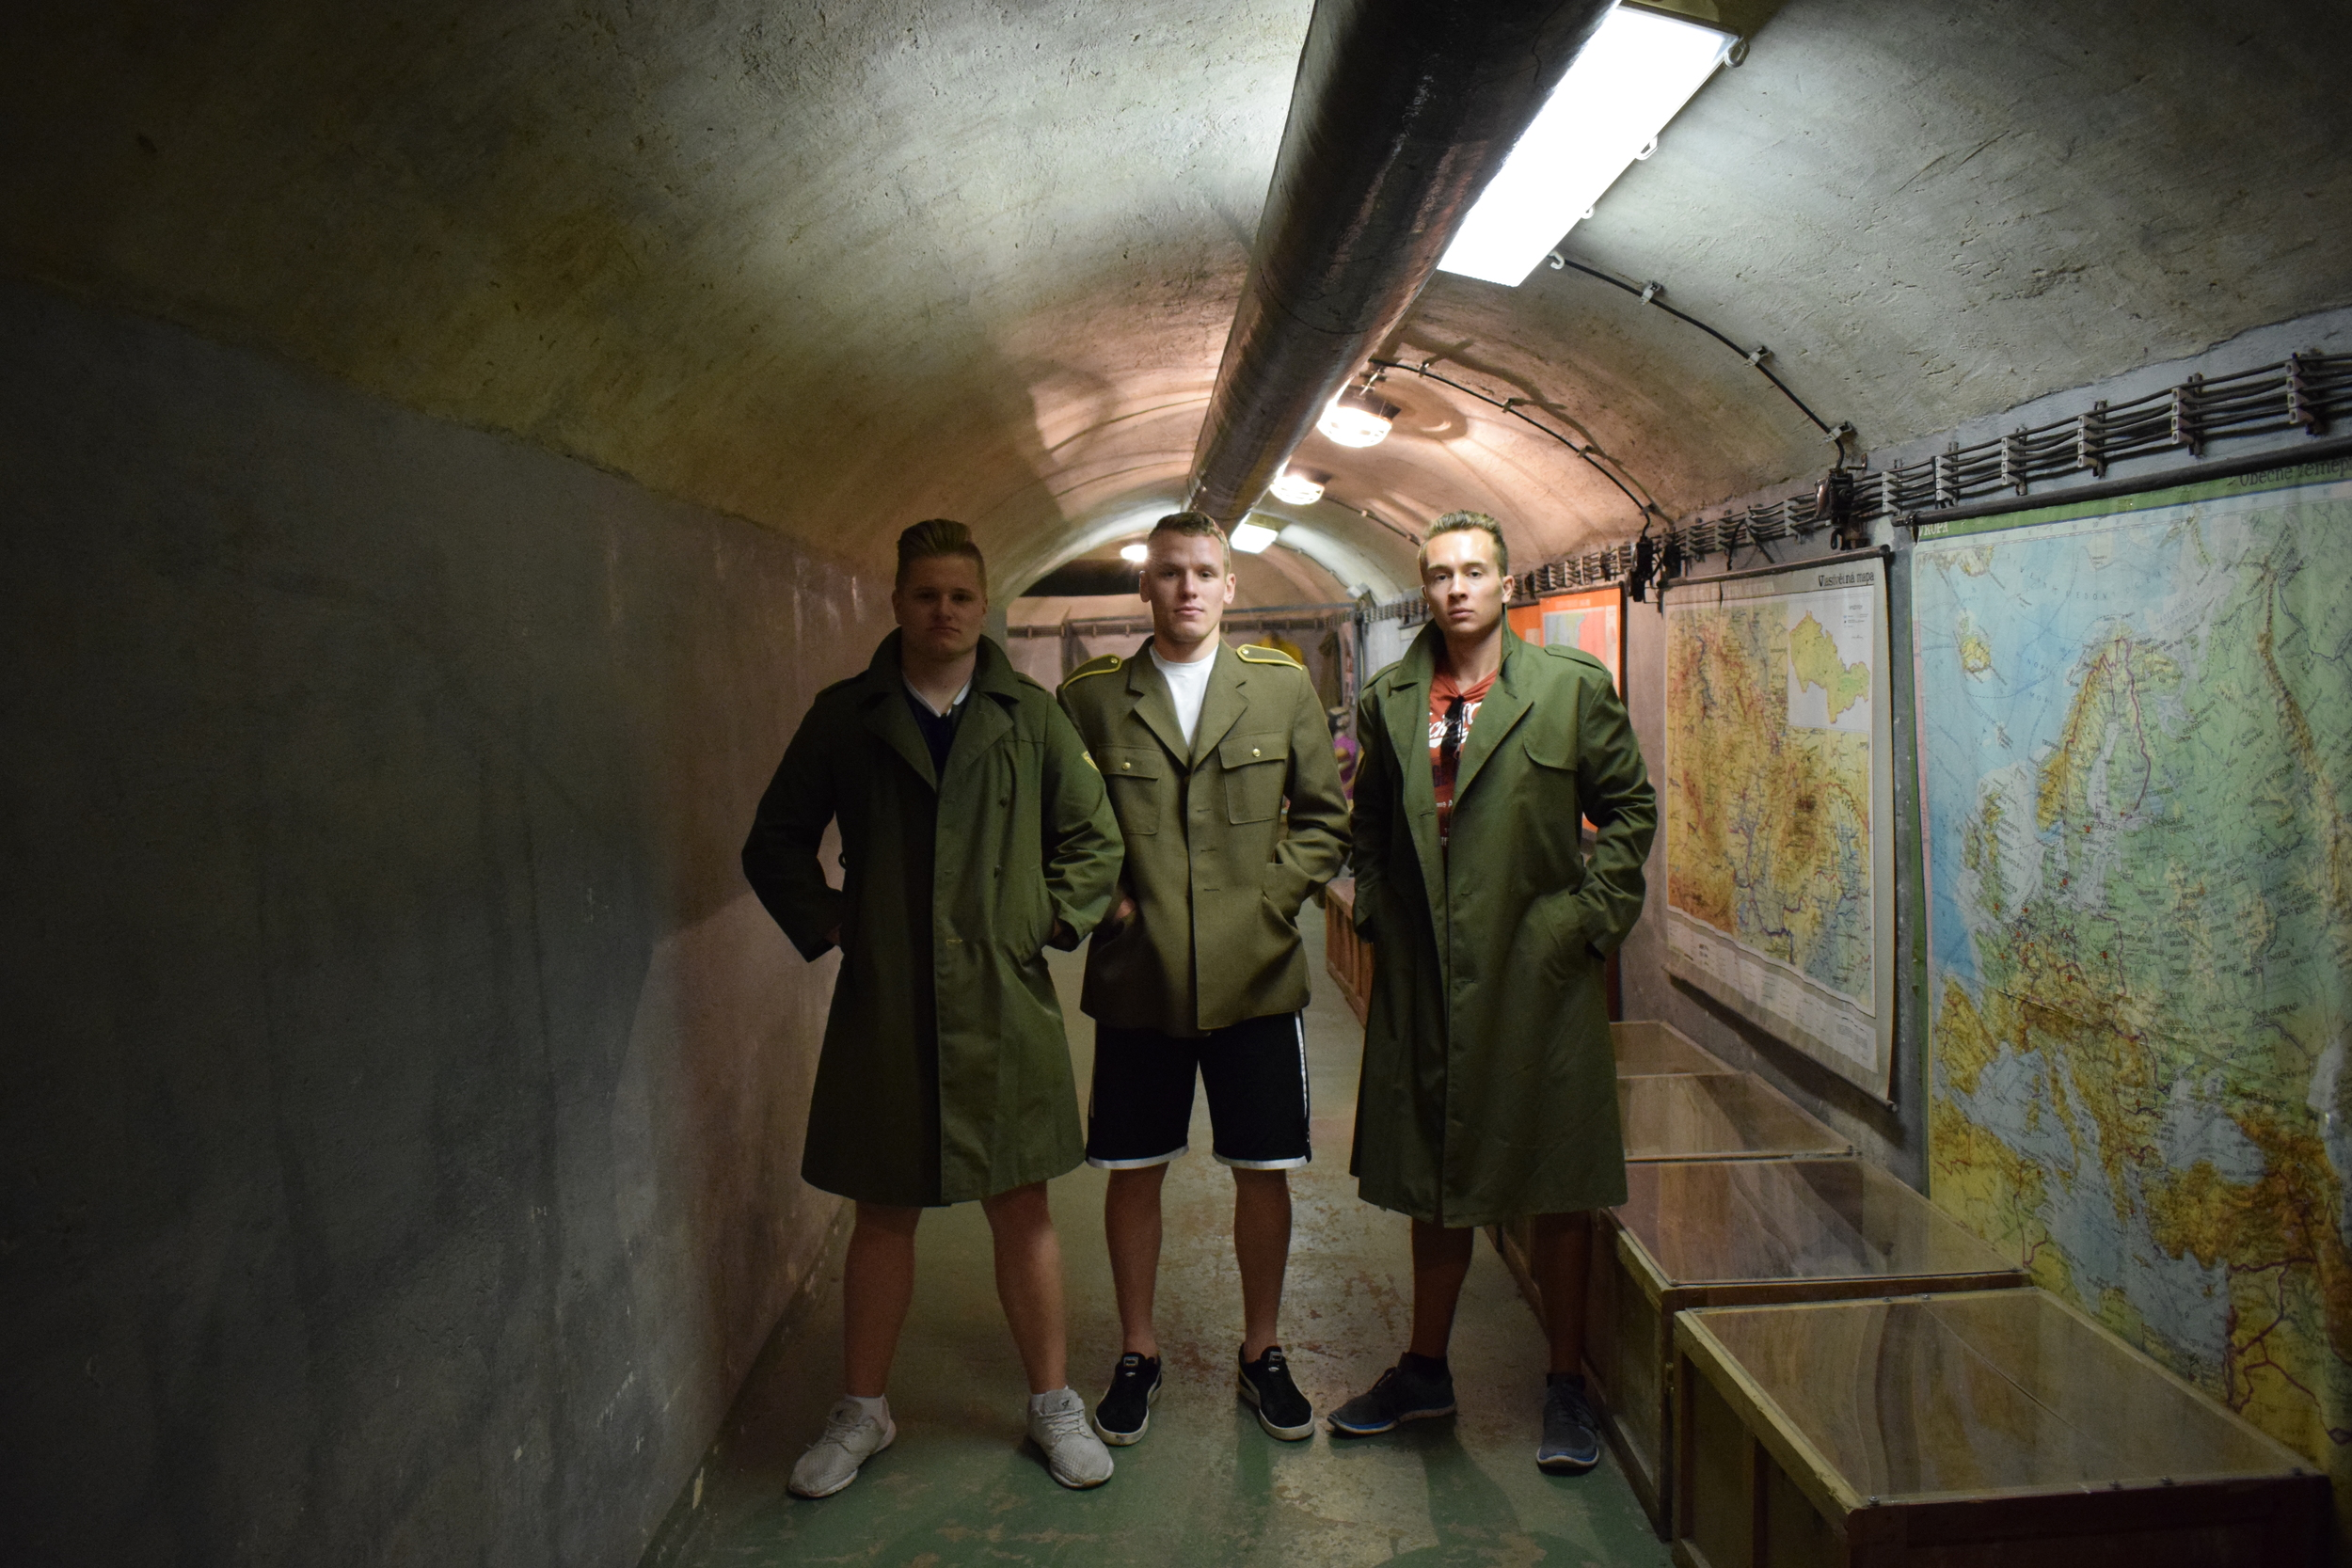 Posing in communist dress inside the nuclear bunker. Facial expressions are for effect only.